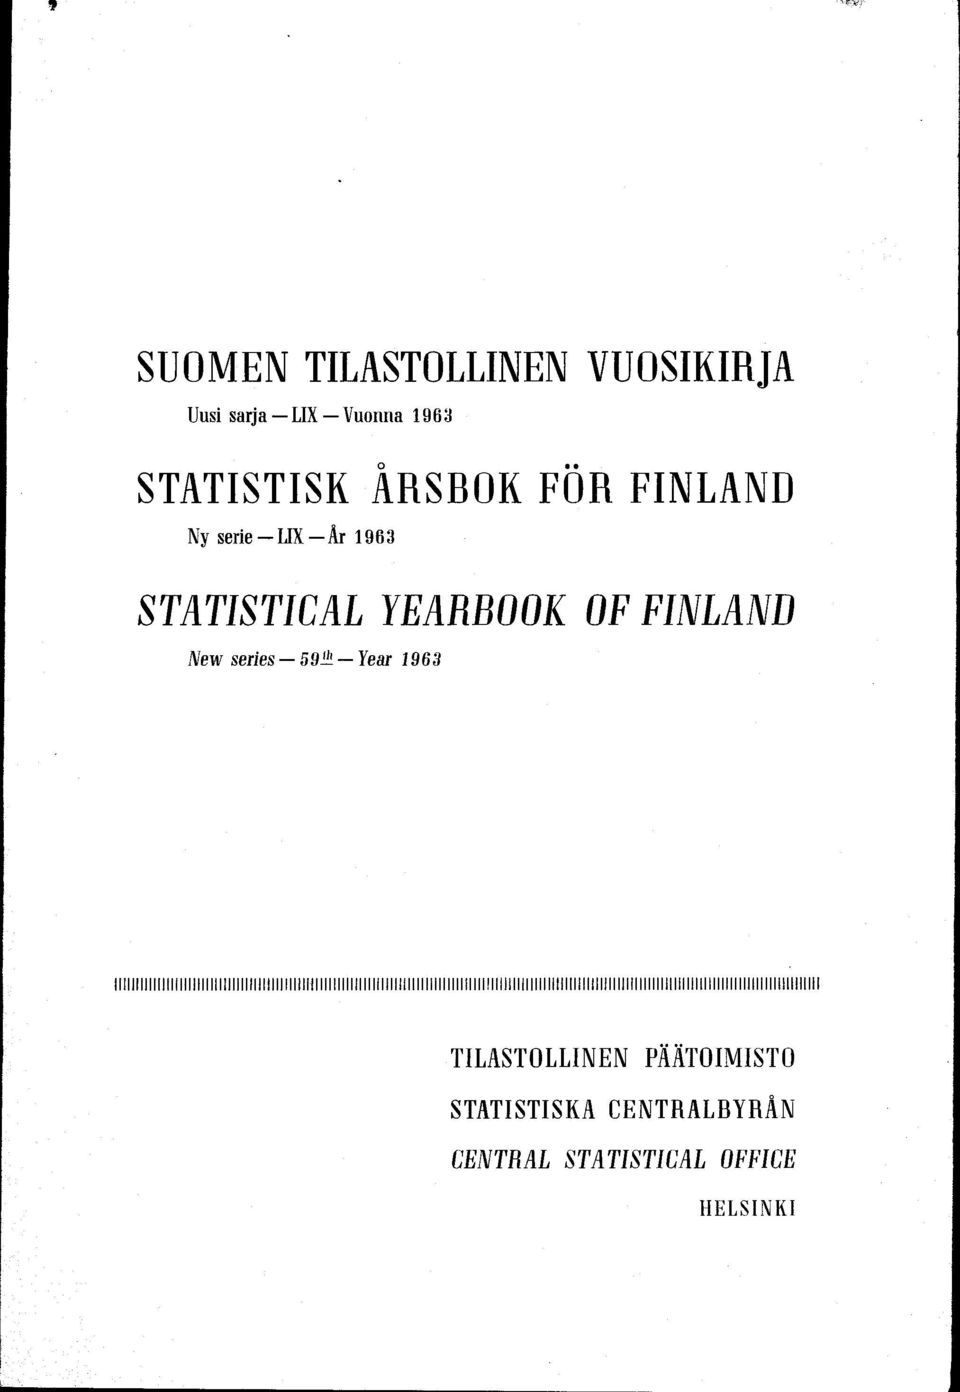 STATISTICAL YEARBOOK OF FINLAND New series 59i Year 963